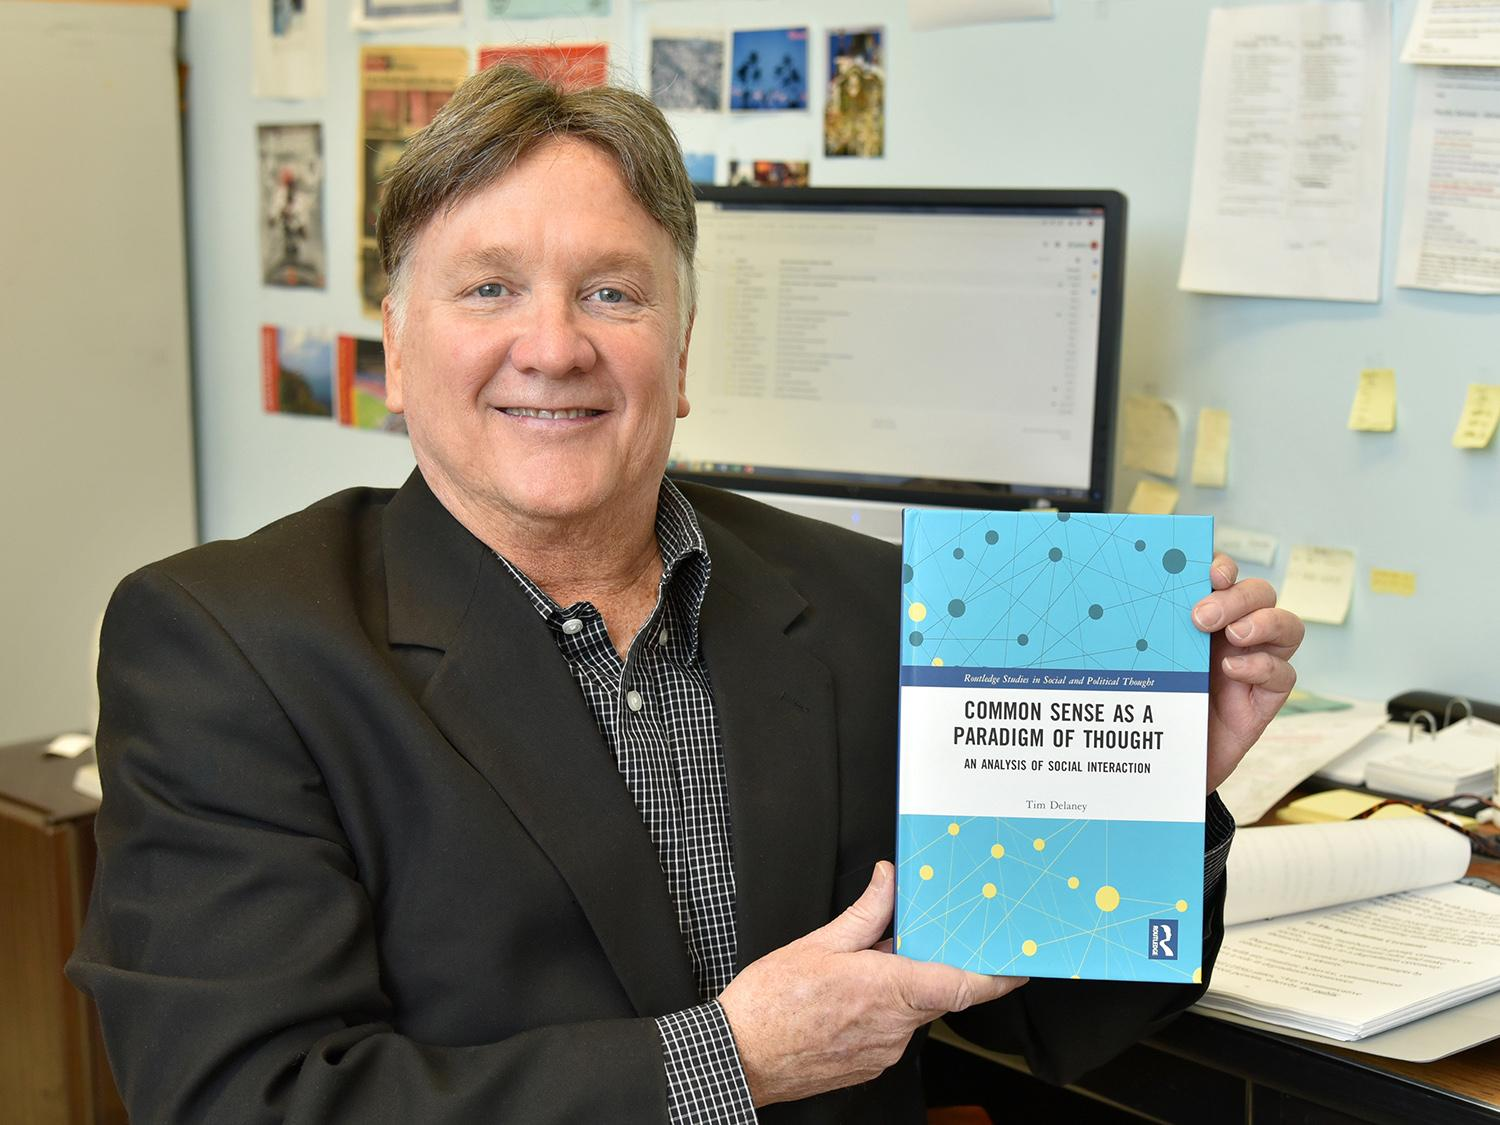 Tim Delaney with book, Common Sense as a Paradigm of Thought